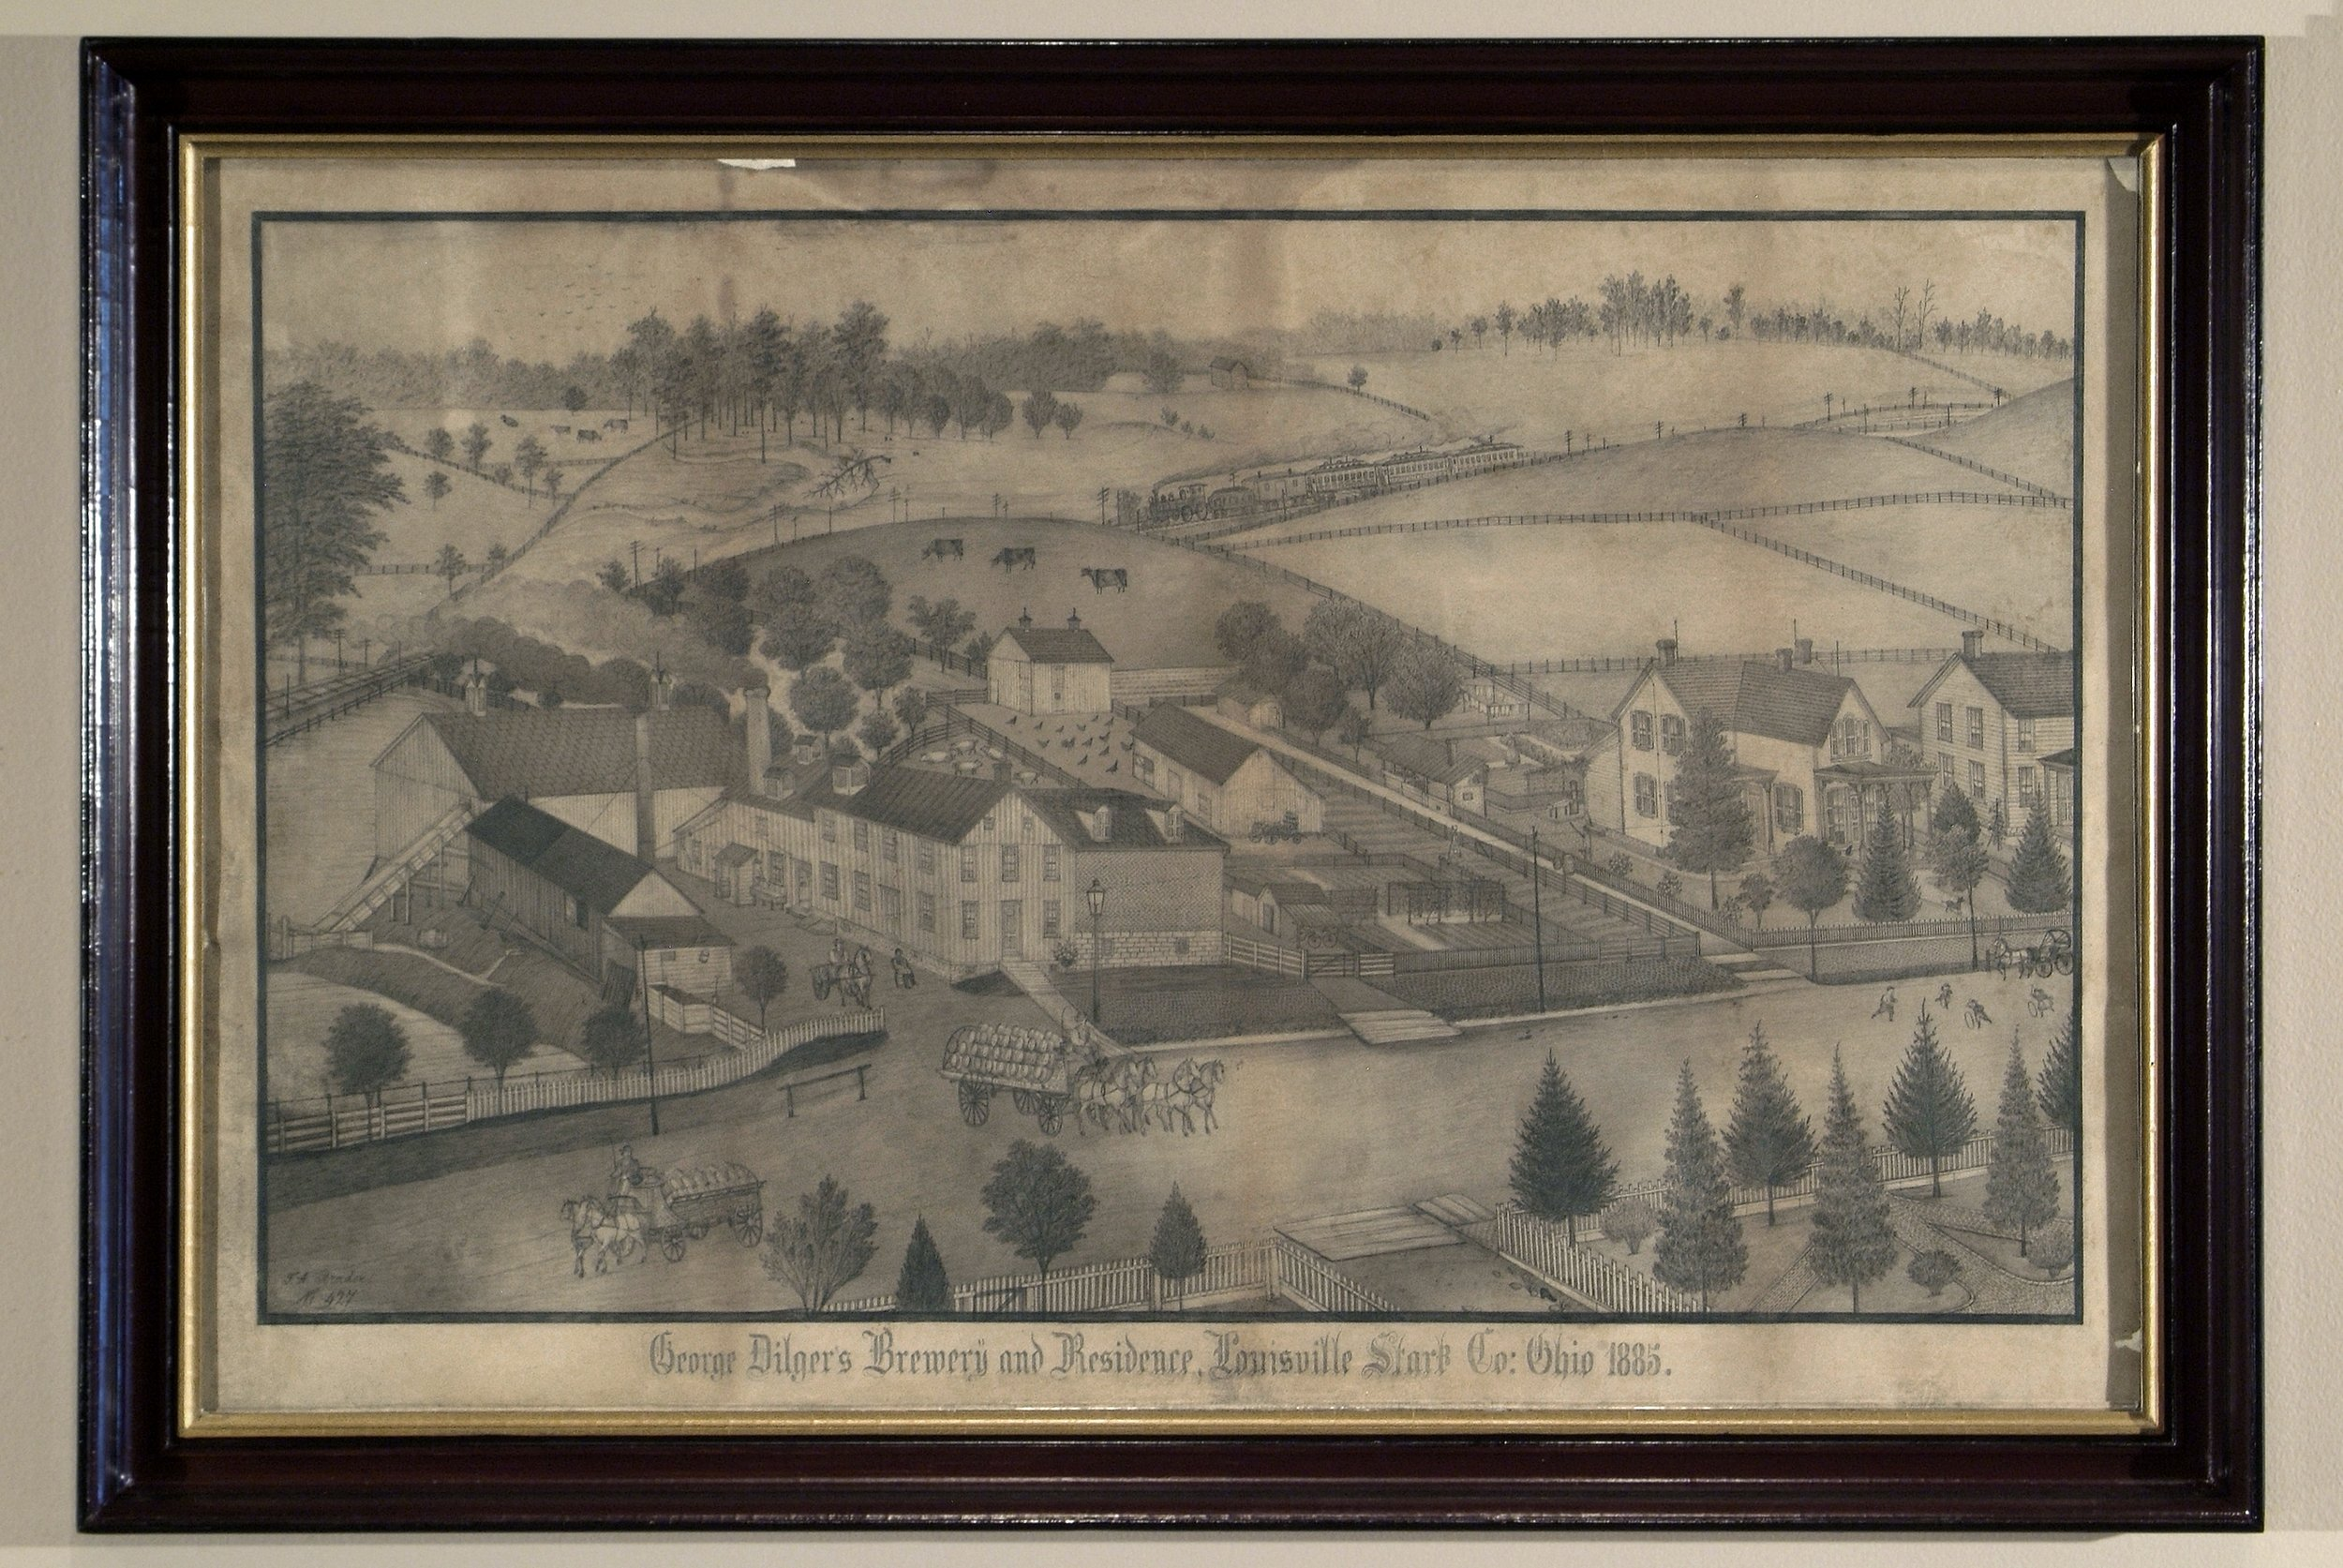 _George_Dilger's_Brewery_and_Residence,_Louisville,_Ohio_1885_.jpg